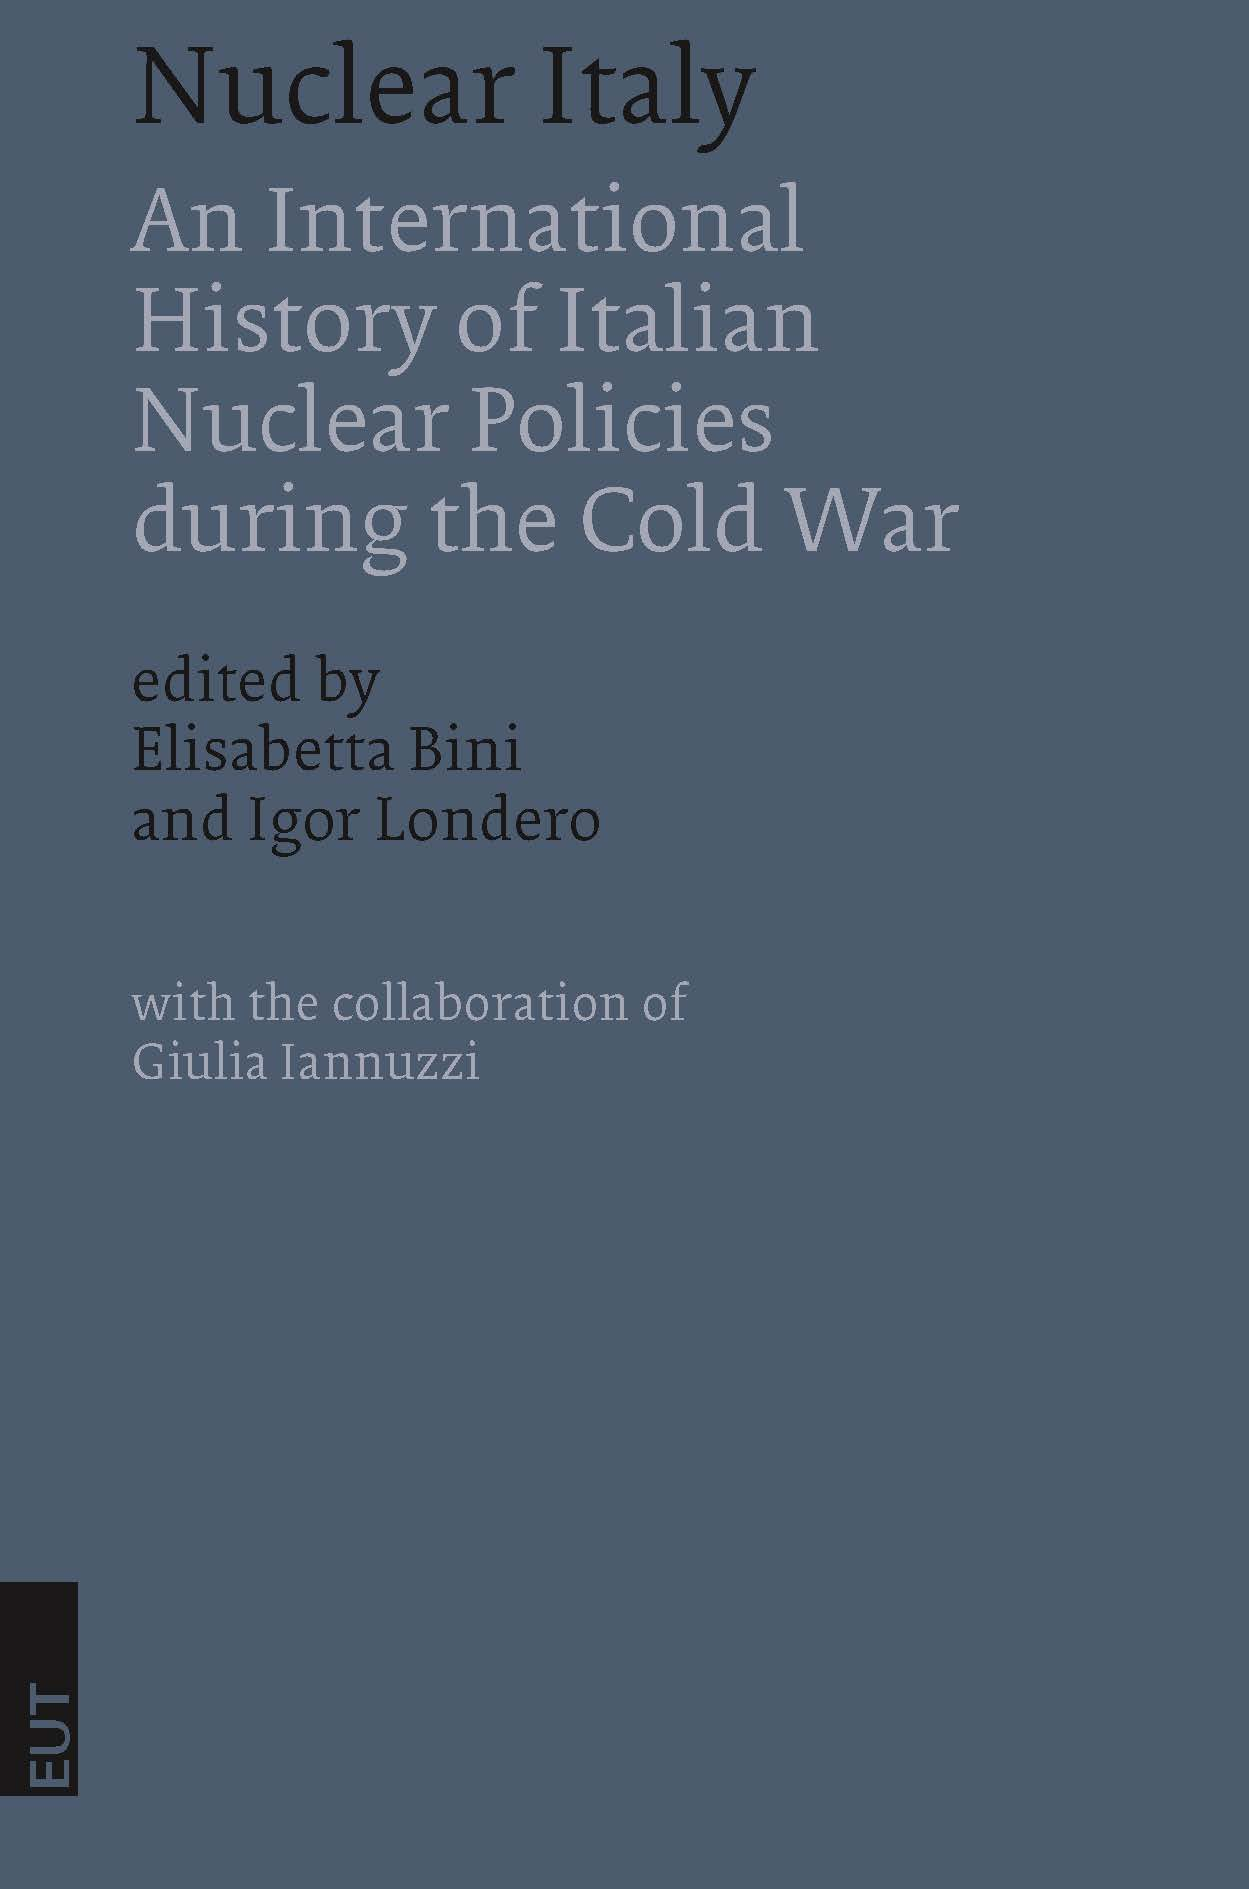 Nuclear Italy. An International History of Italian Nuclear Policies during the Cold War